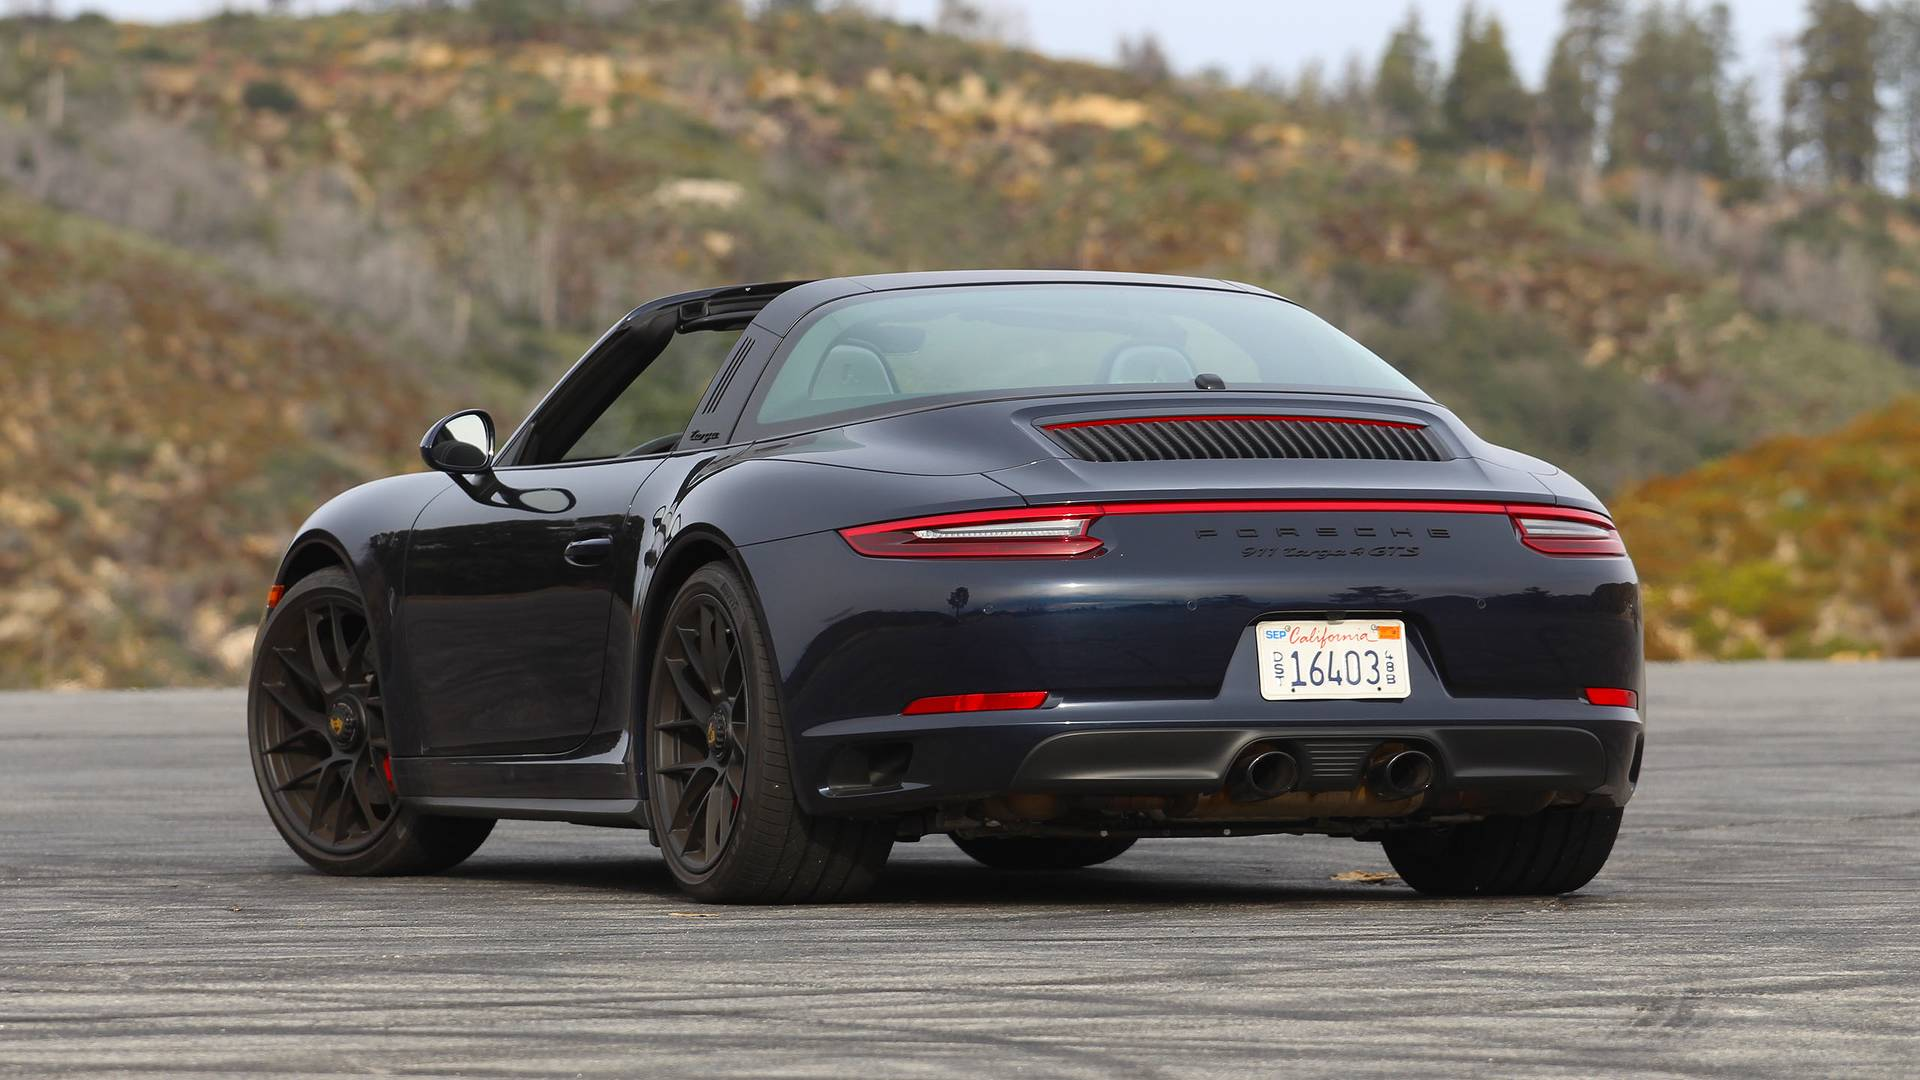 2018 Porsche 911 Targa 4 Gts Review Nearly Perfect